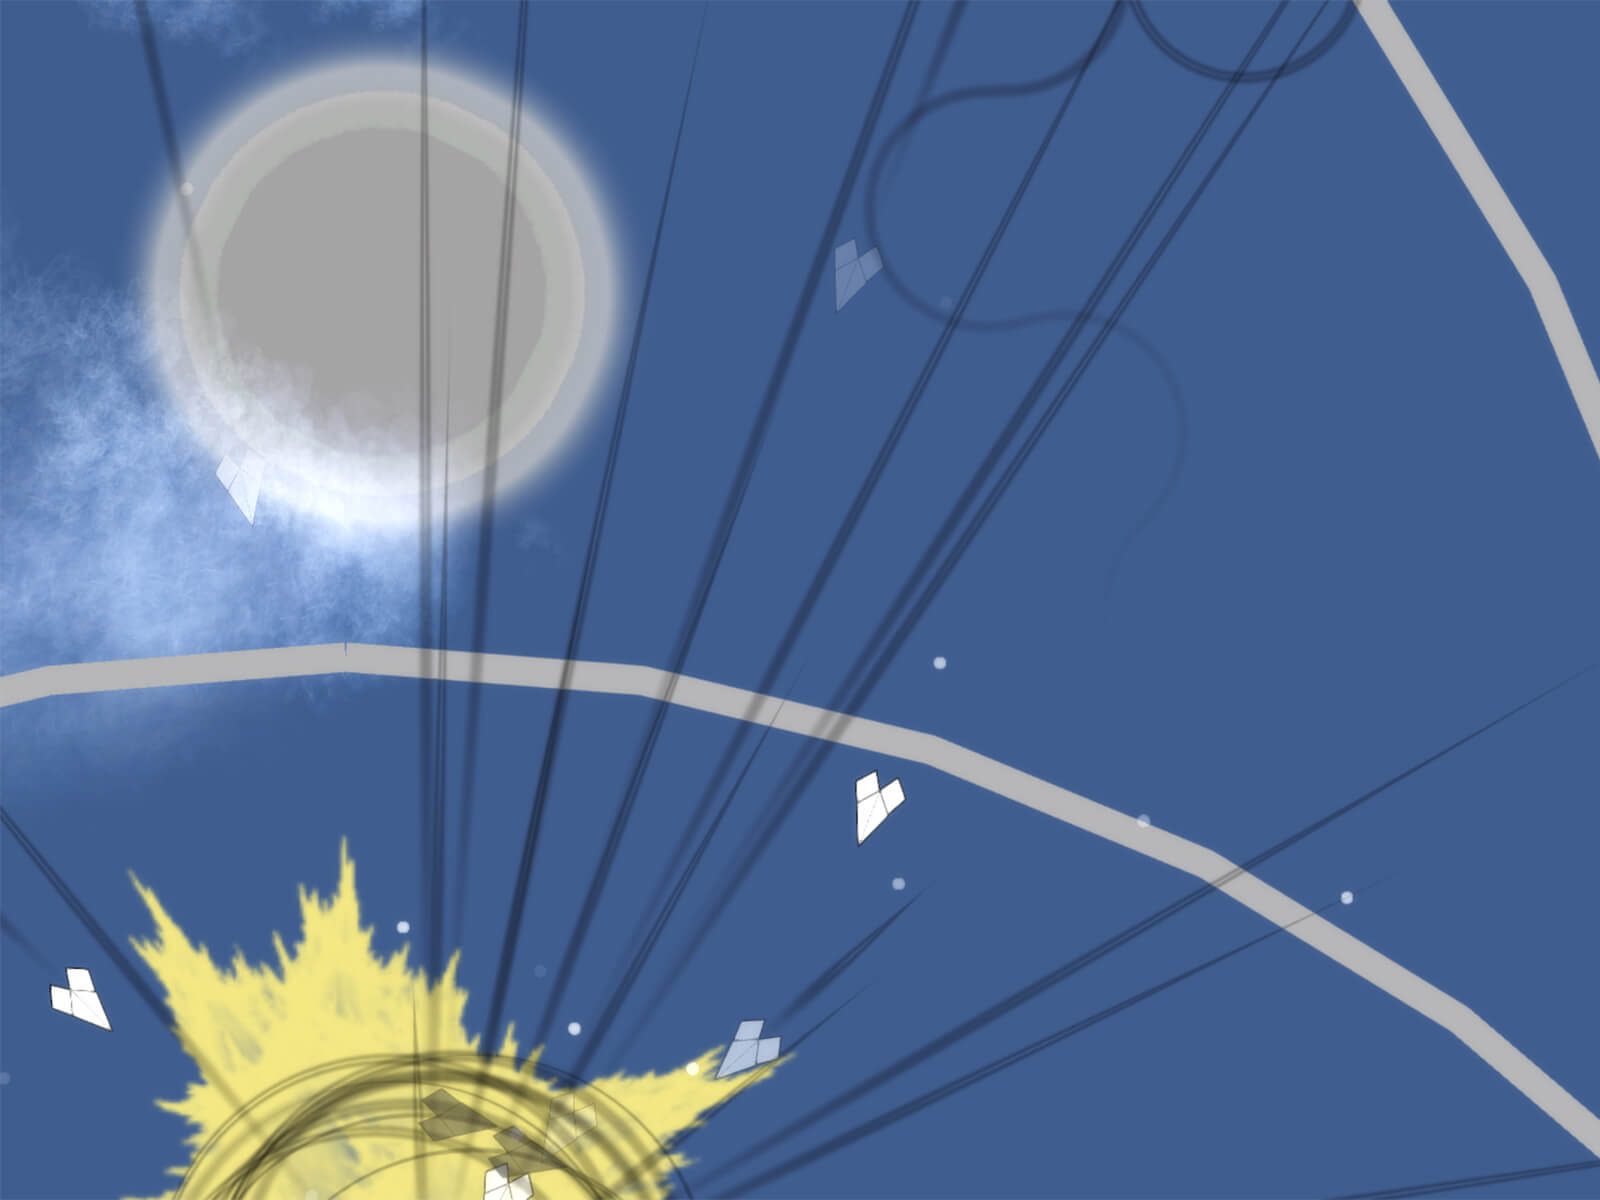 Screenshot from DigiPen Singapore student game Meaning, featuring paper airplanes floating through the sky